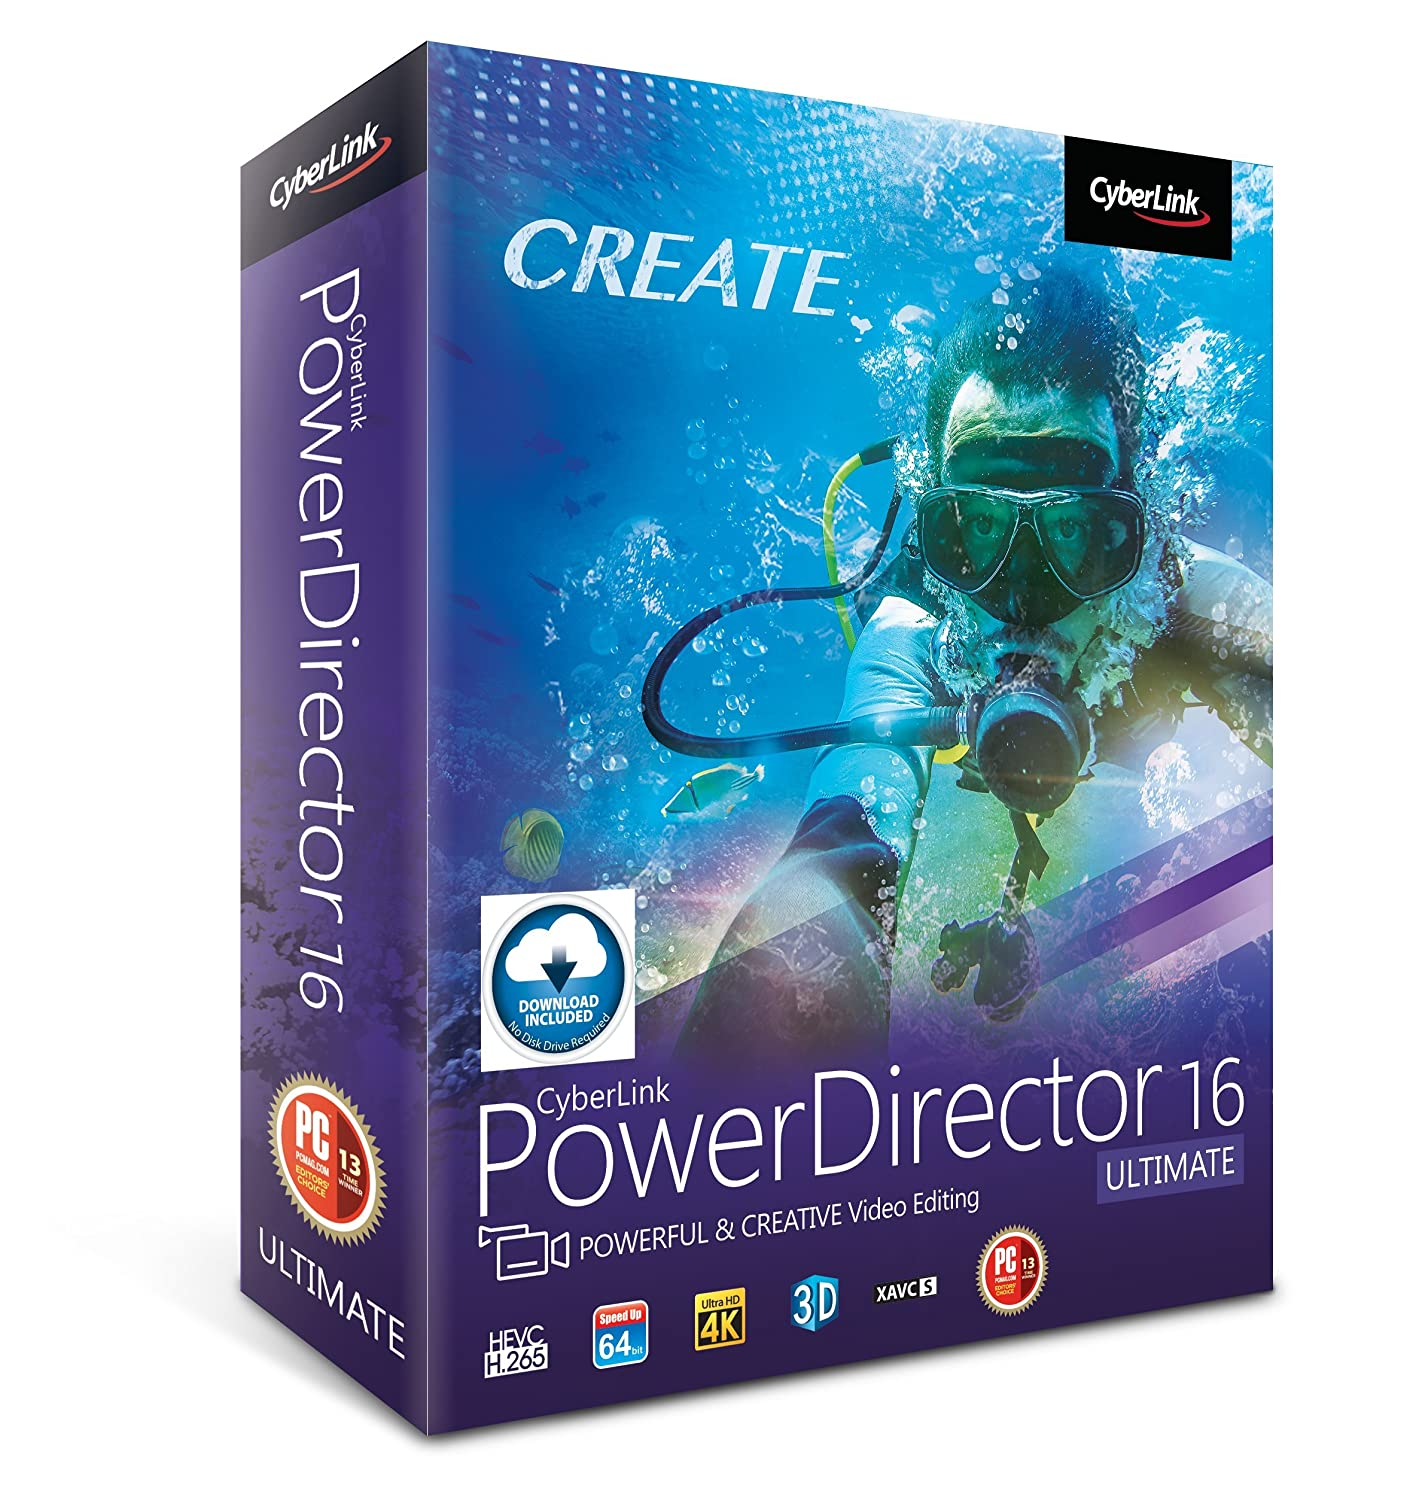 Cyberlink PowerDirector 16 Ultimate: Professional Video Editing Software